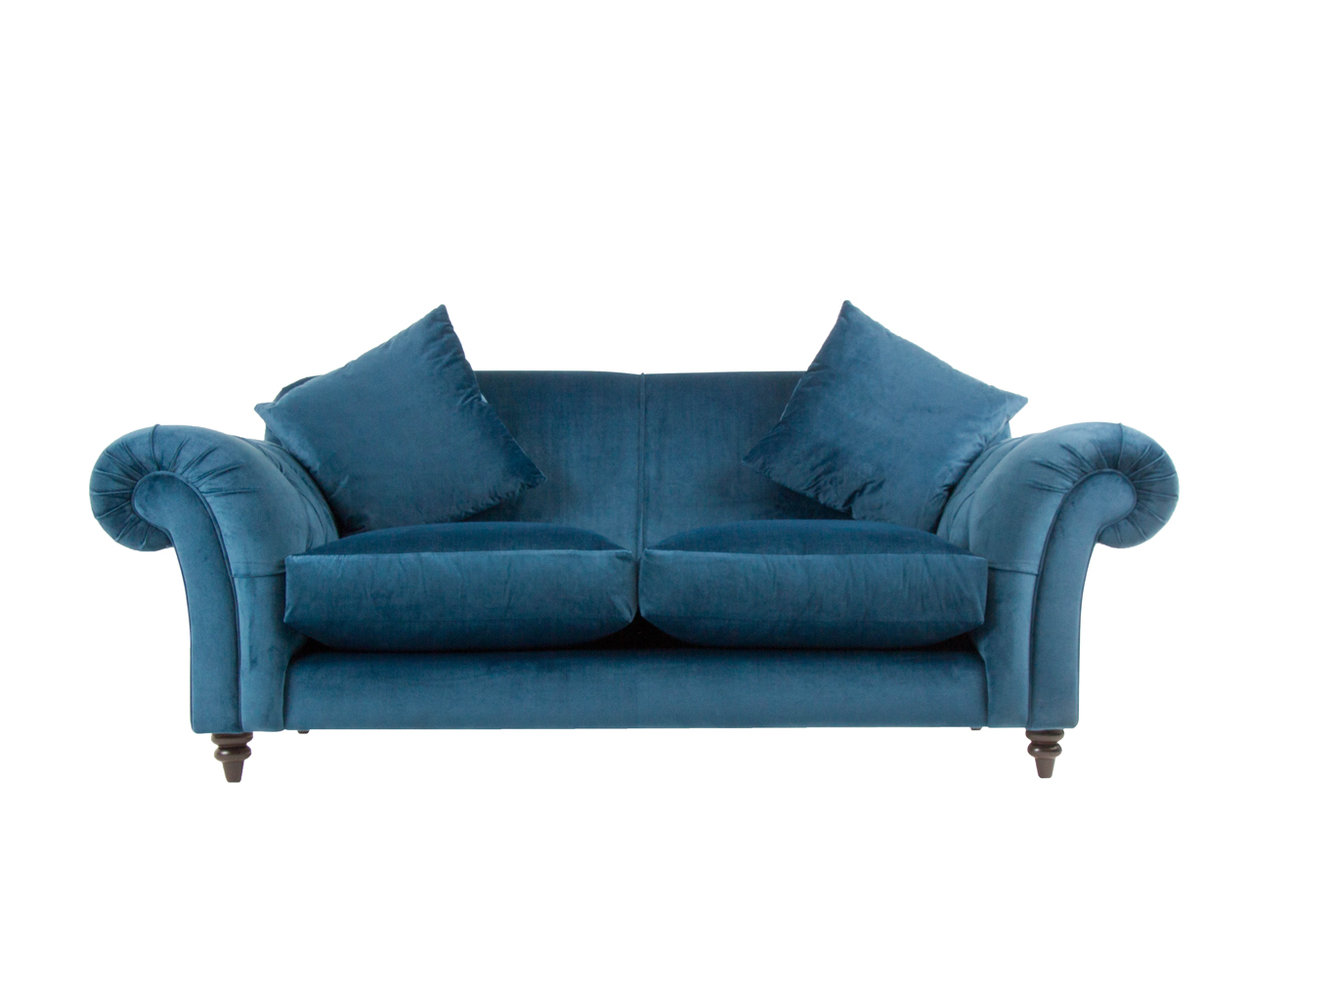 Lytton Sofa